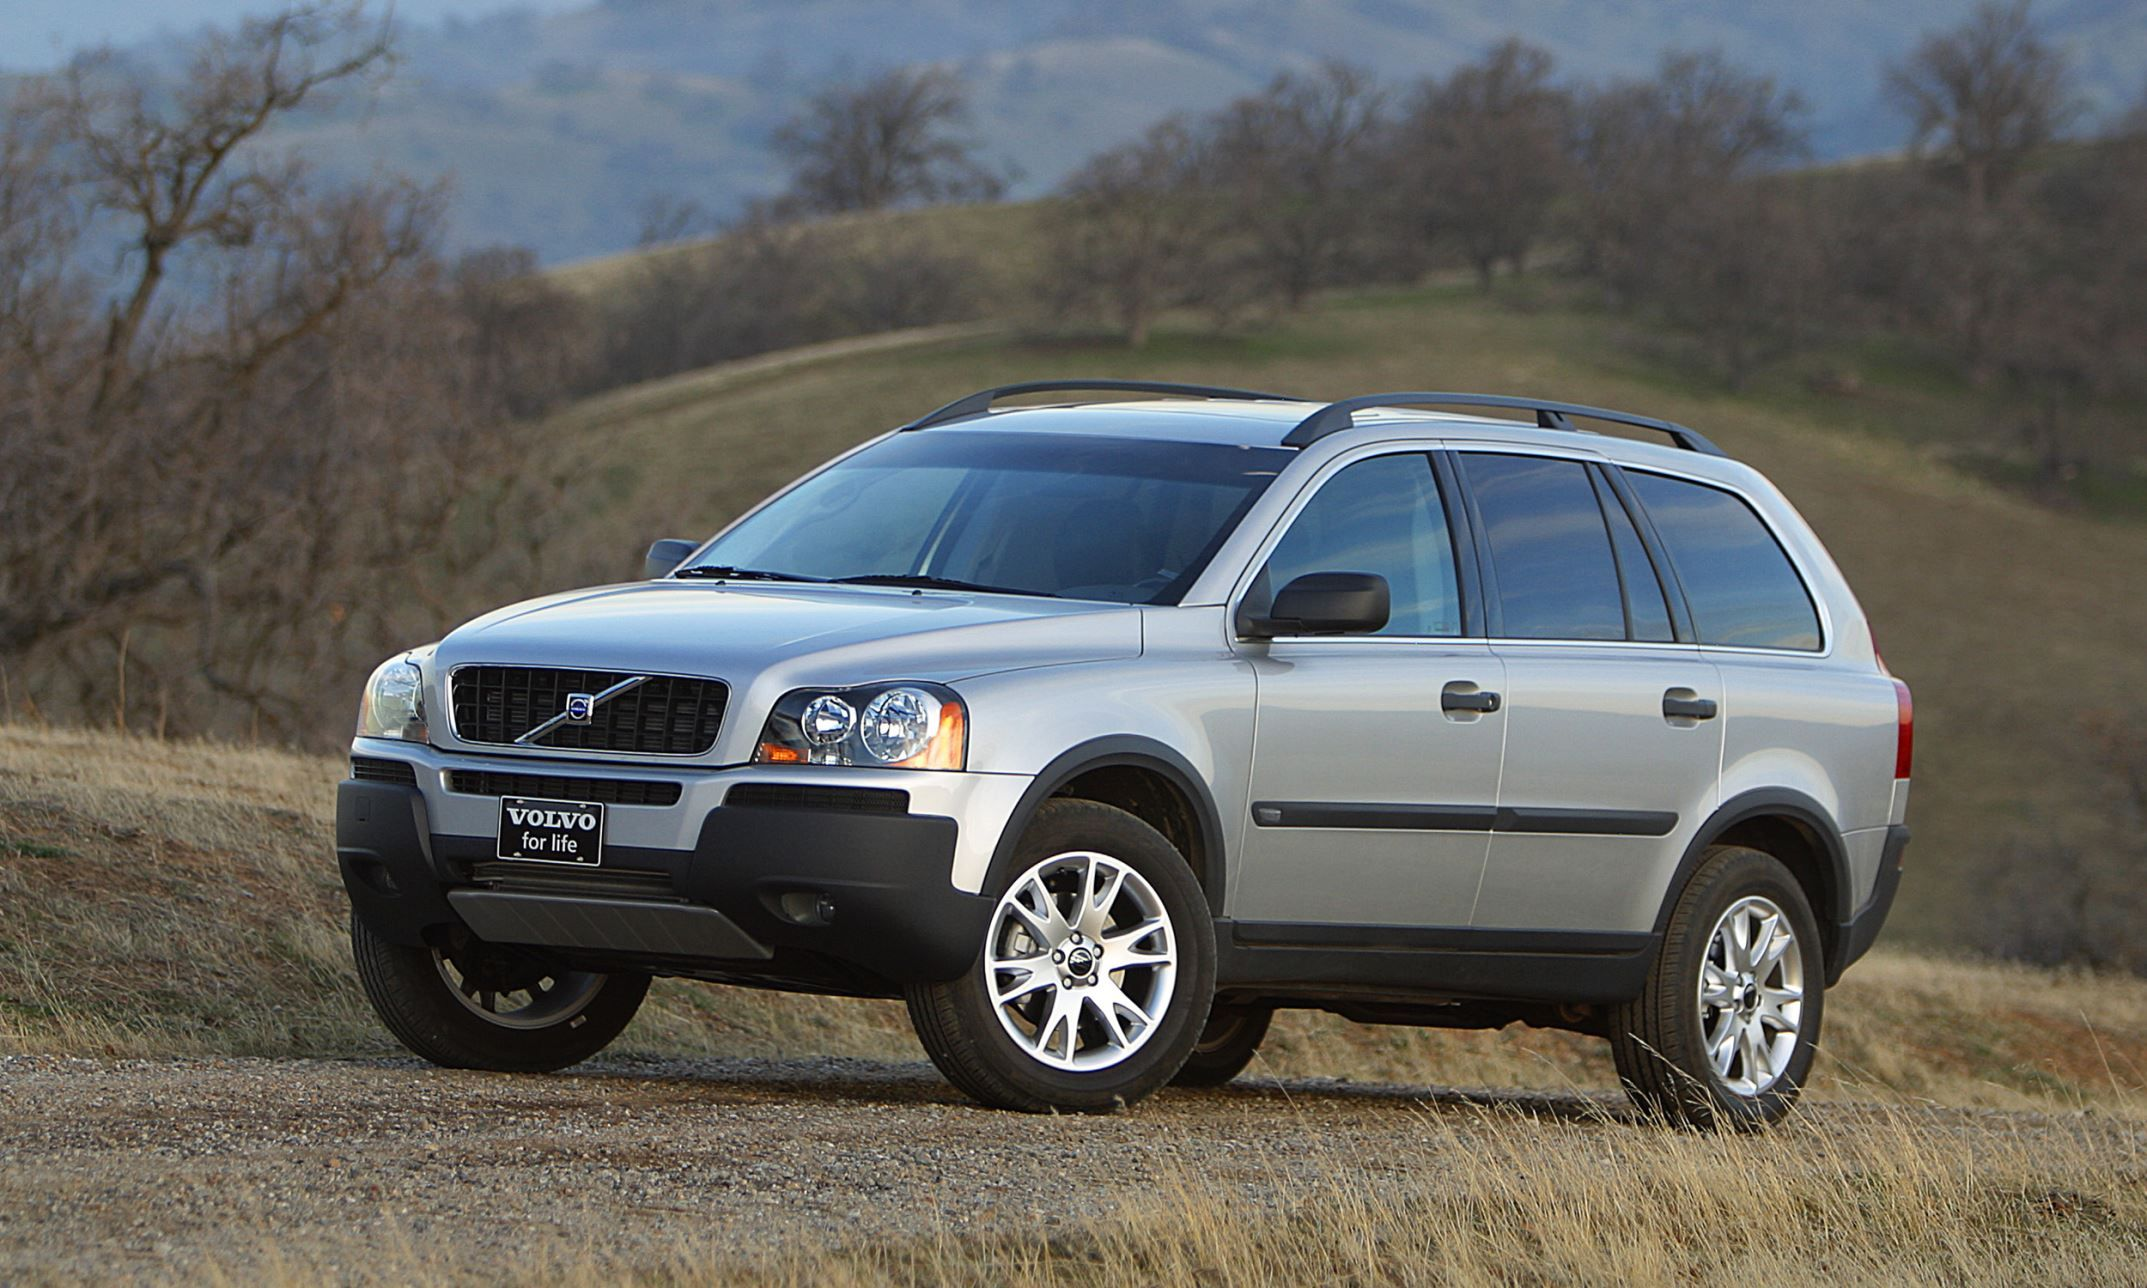 20 Great Second Vehicles Volvo xc90, Volvo, Cars for sale